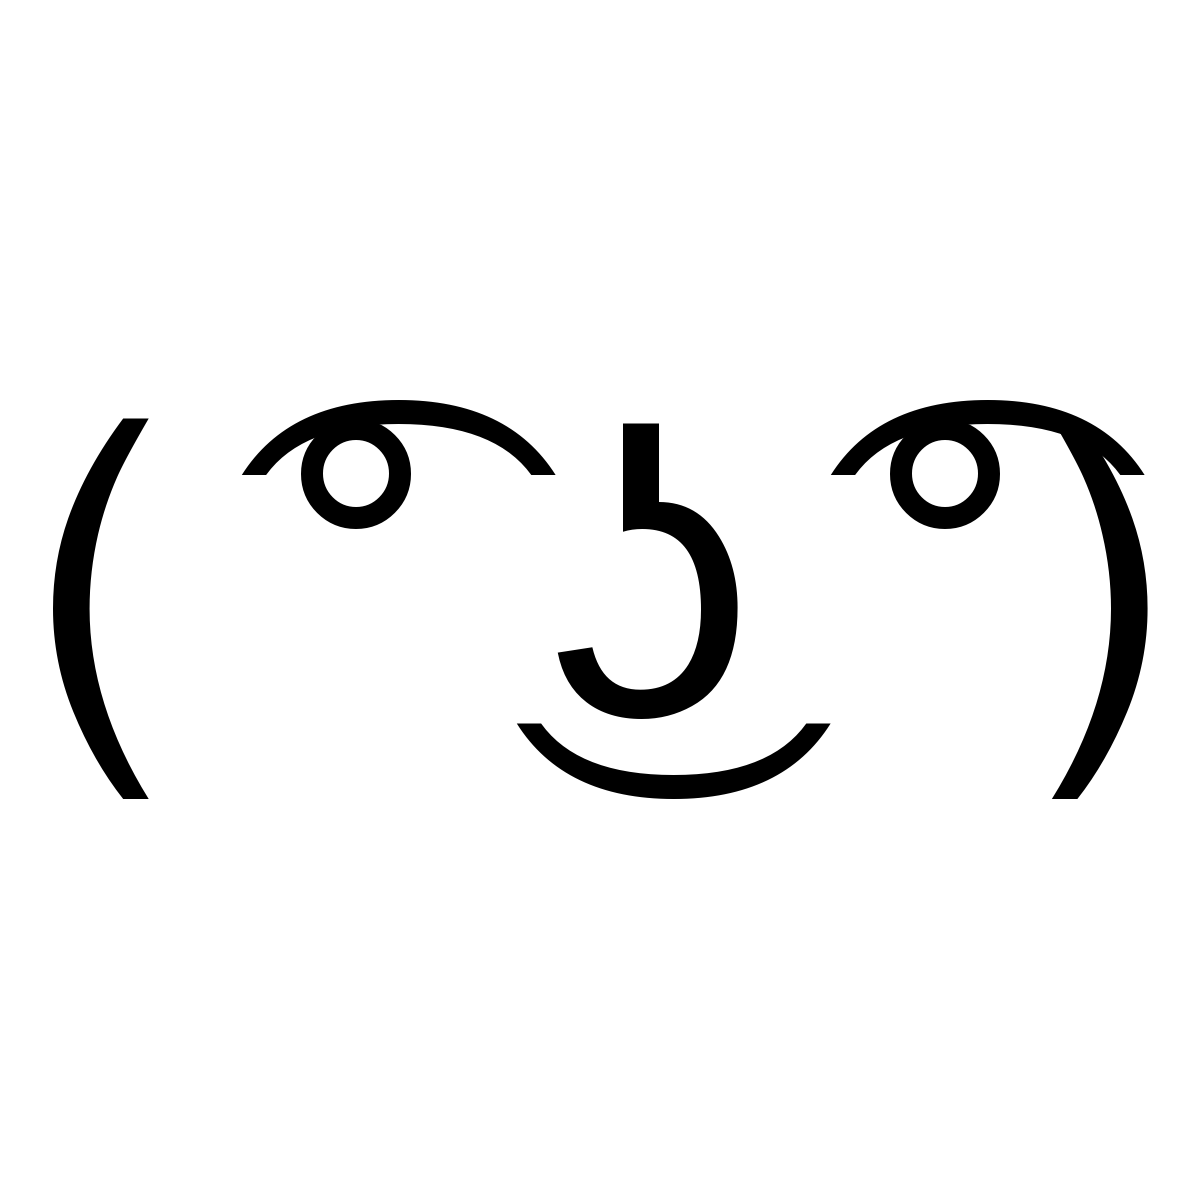 The Keyboard List And Dictionary Of Le Lenny Face Text Emoticons Just One Tap Click To Copy And Paste On Facebook Bored Meme Lenny Face Meme Emoticons Text